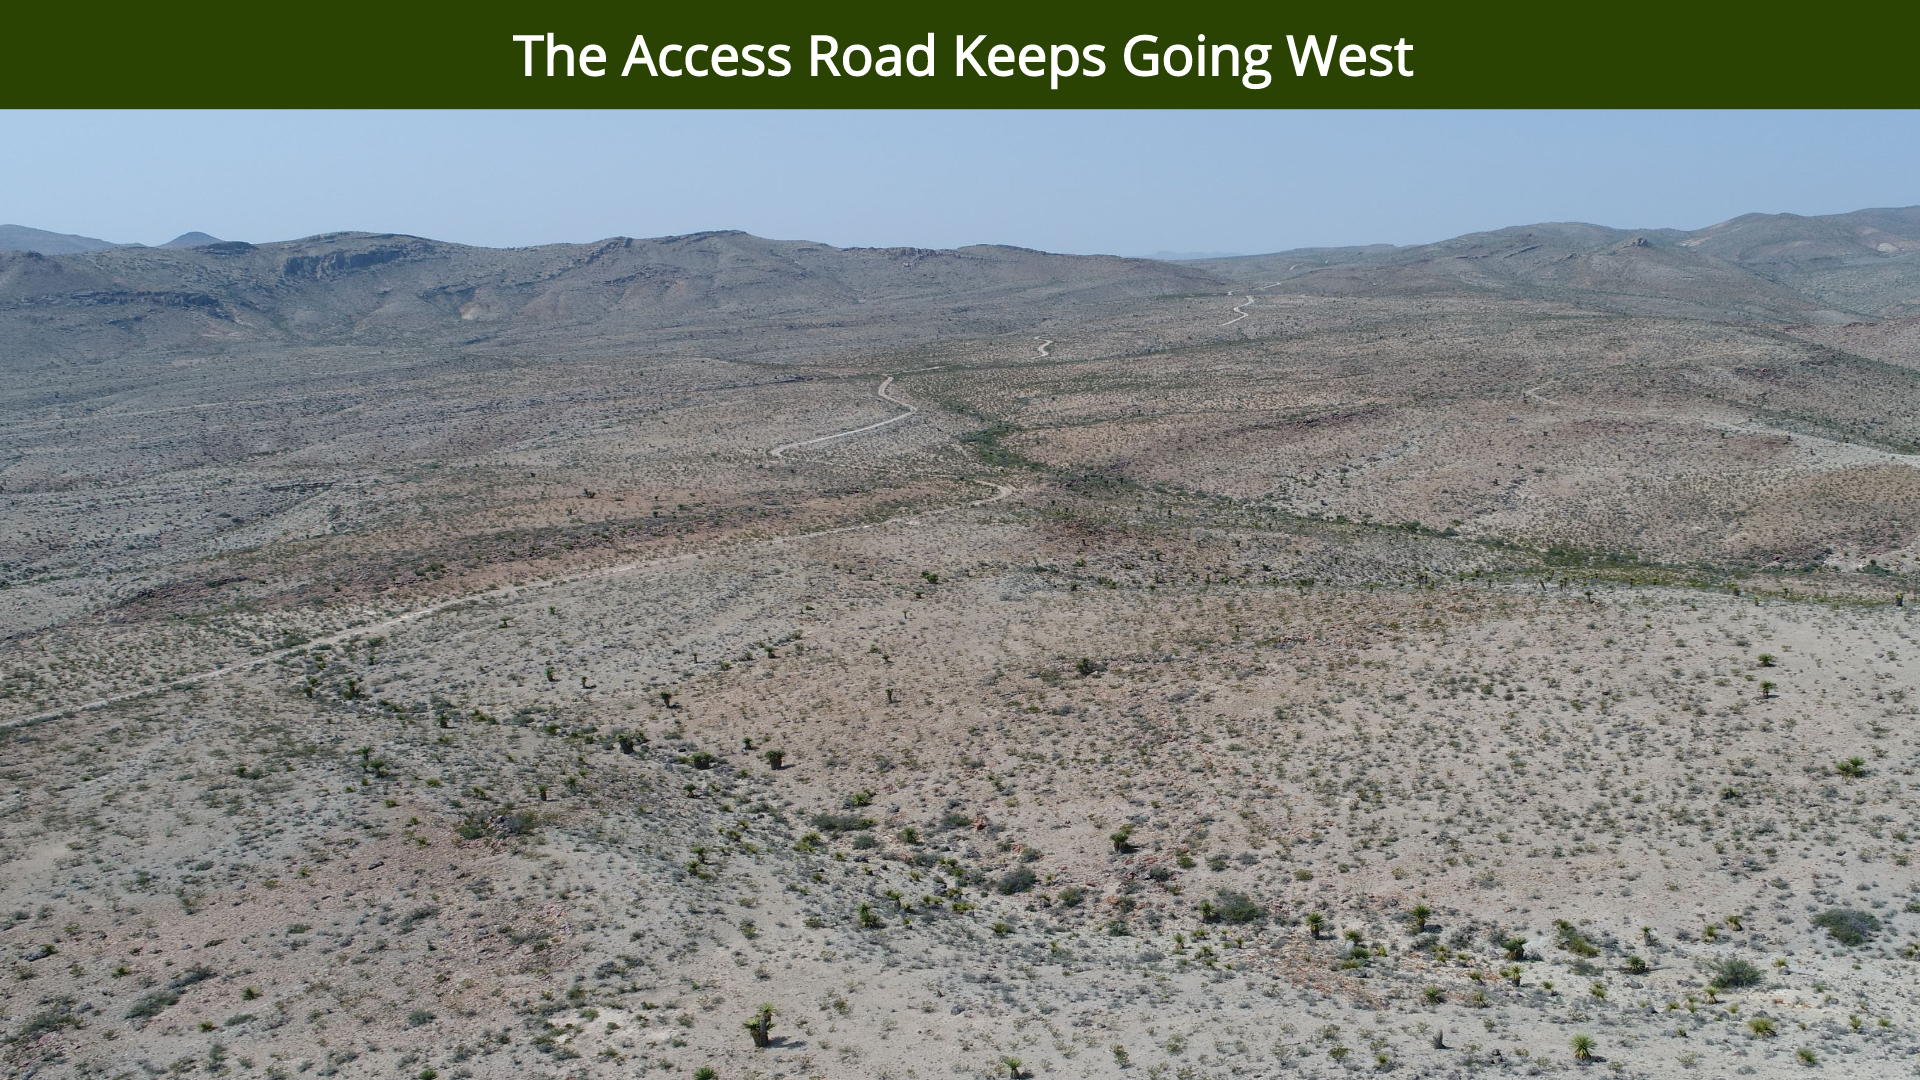 The Access Road Keeps Going West